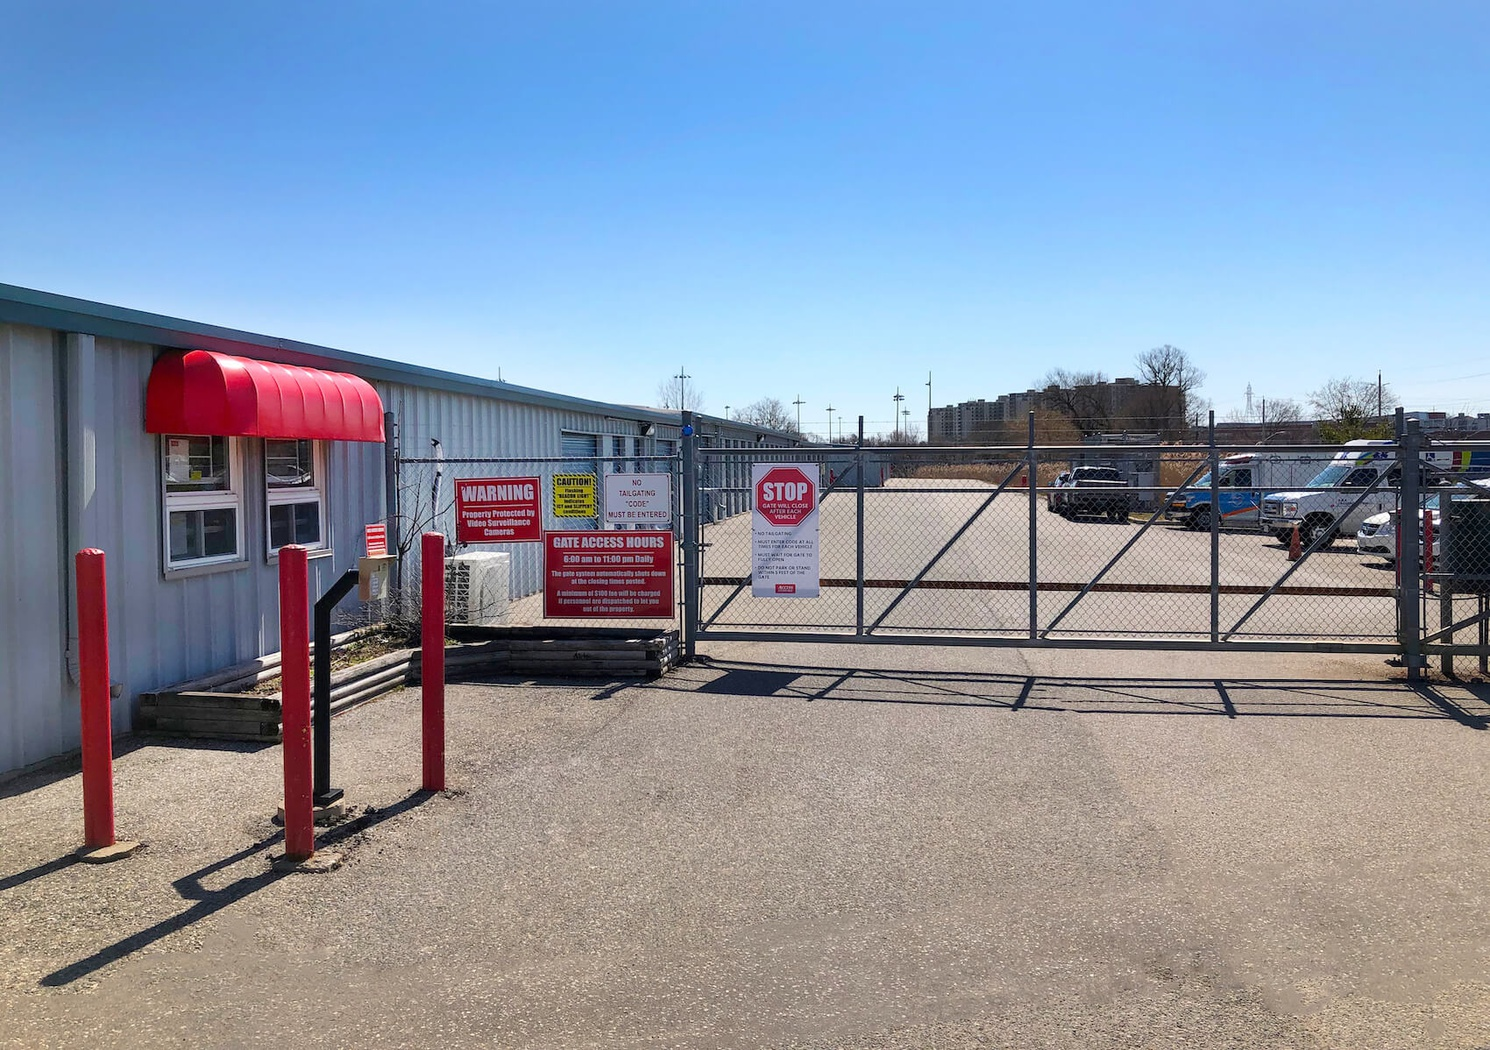 Rent Kitchener storage units at 176 Hayward Ave. We offer a wide-range of affordable self storage units and your first 4 weeks are free!